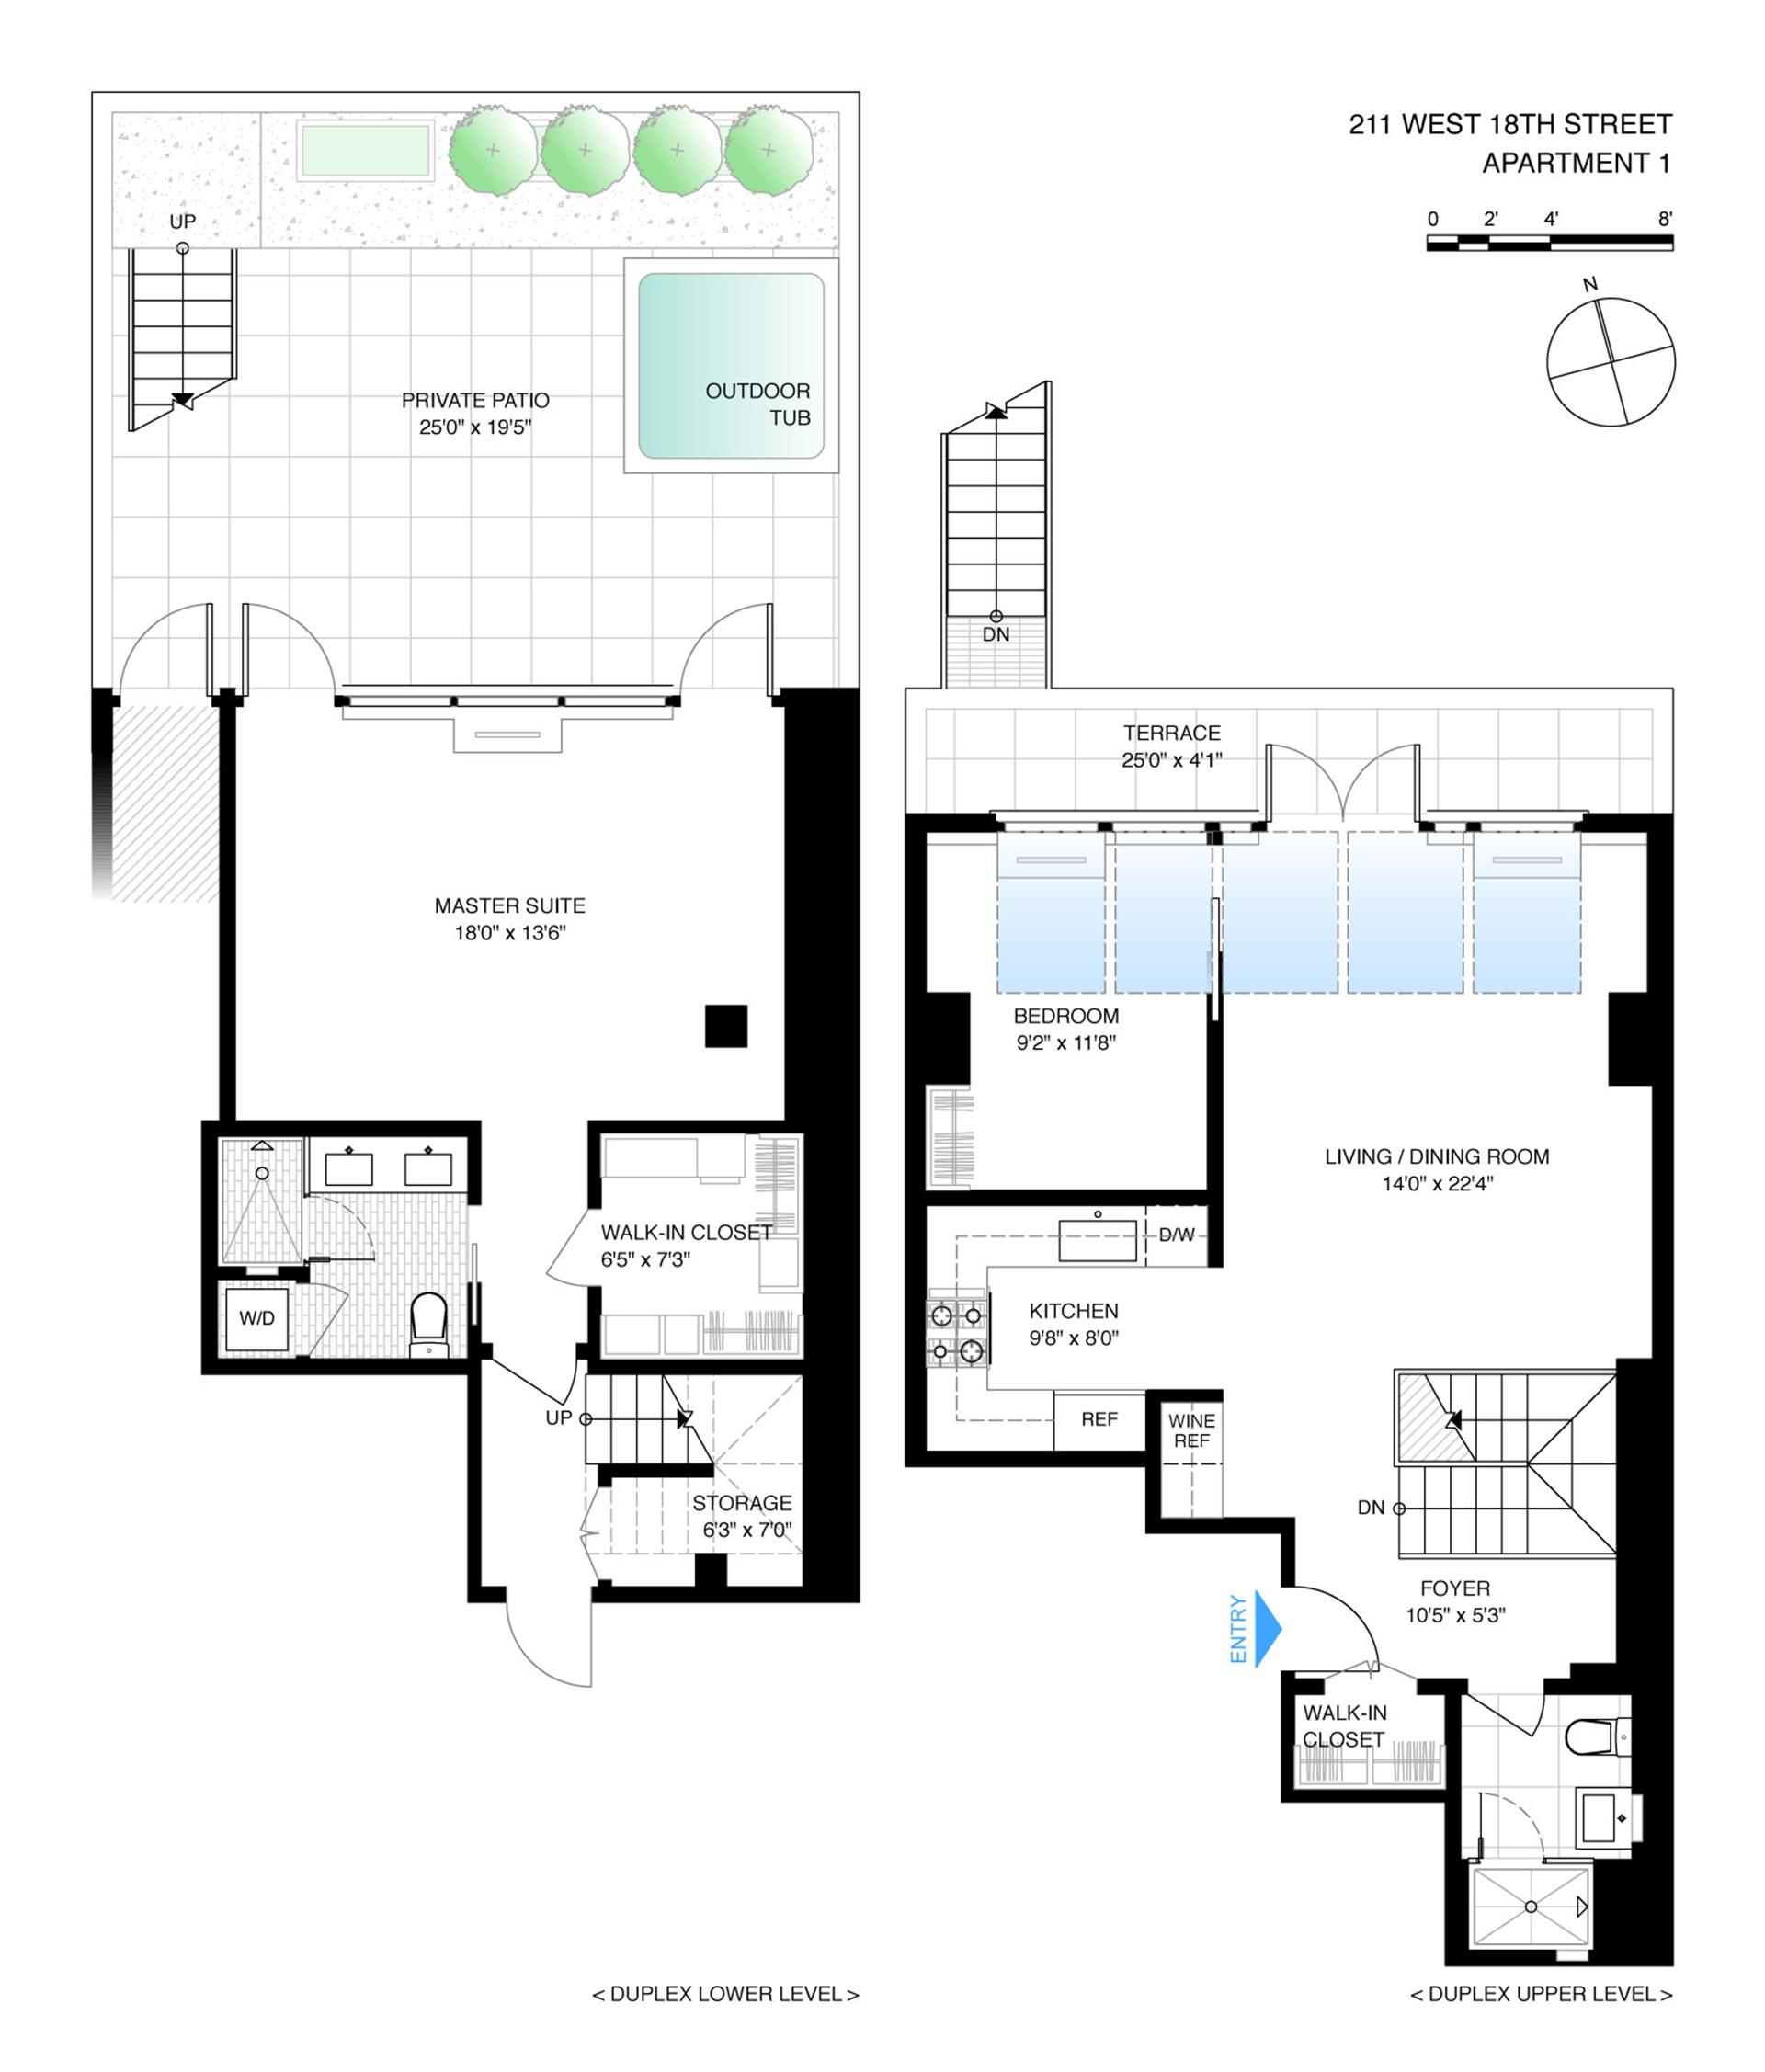 Floor plan of 211 West 18th St, 1 - Chelsea, New York